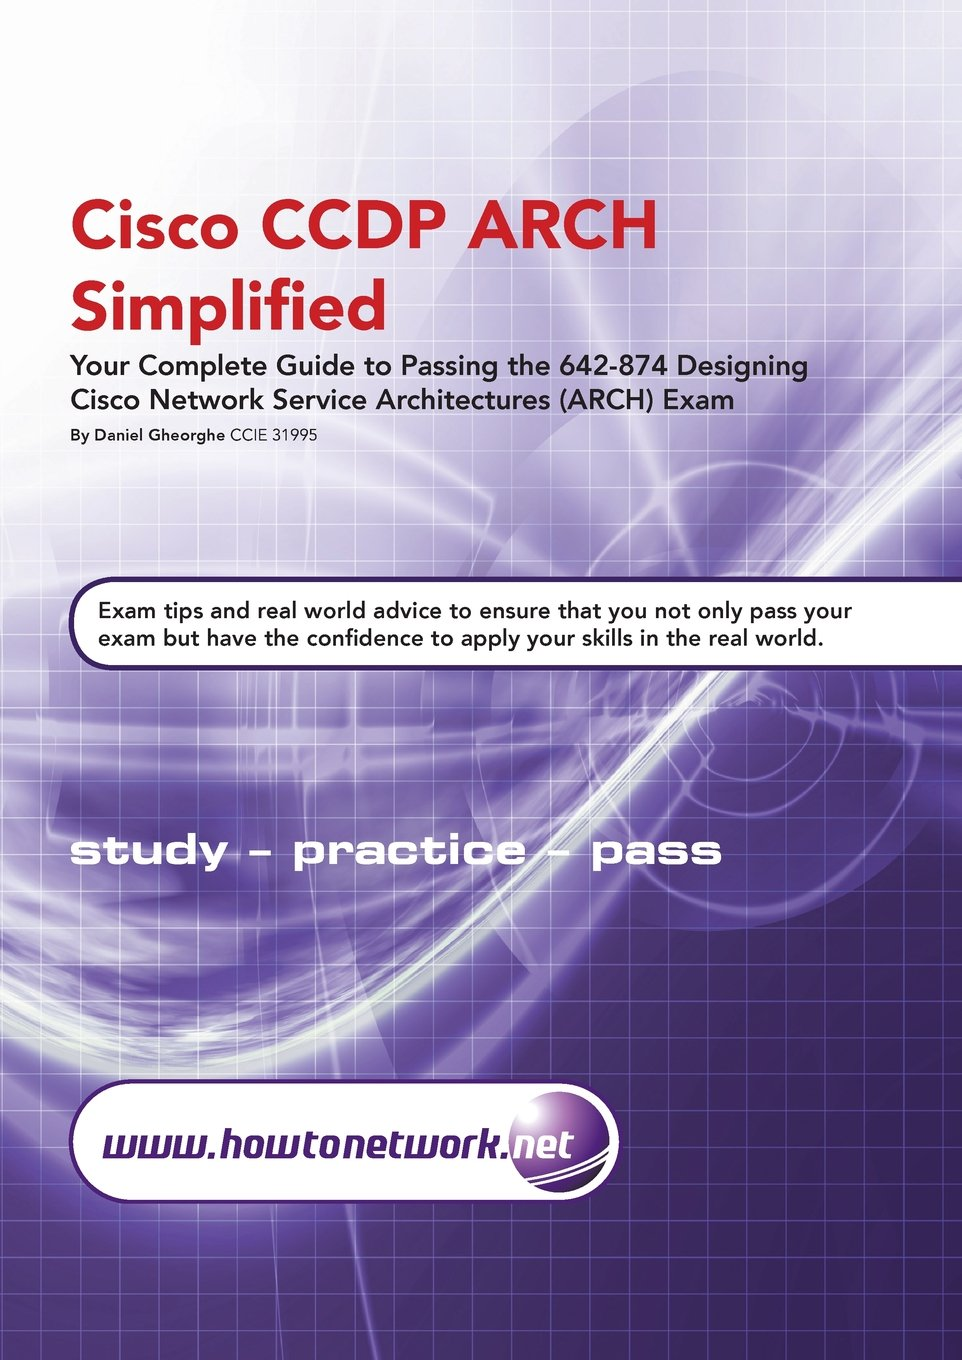 Cisco ccdp arch simplified daniel gheorghe farai tafa paul cisco ccdp arch simplified daniel gheorghe farai tafa paul william browning 9780956989284 amazon books 1betcityfo Choice Image